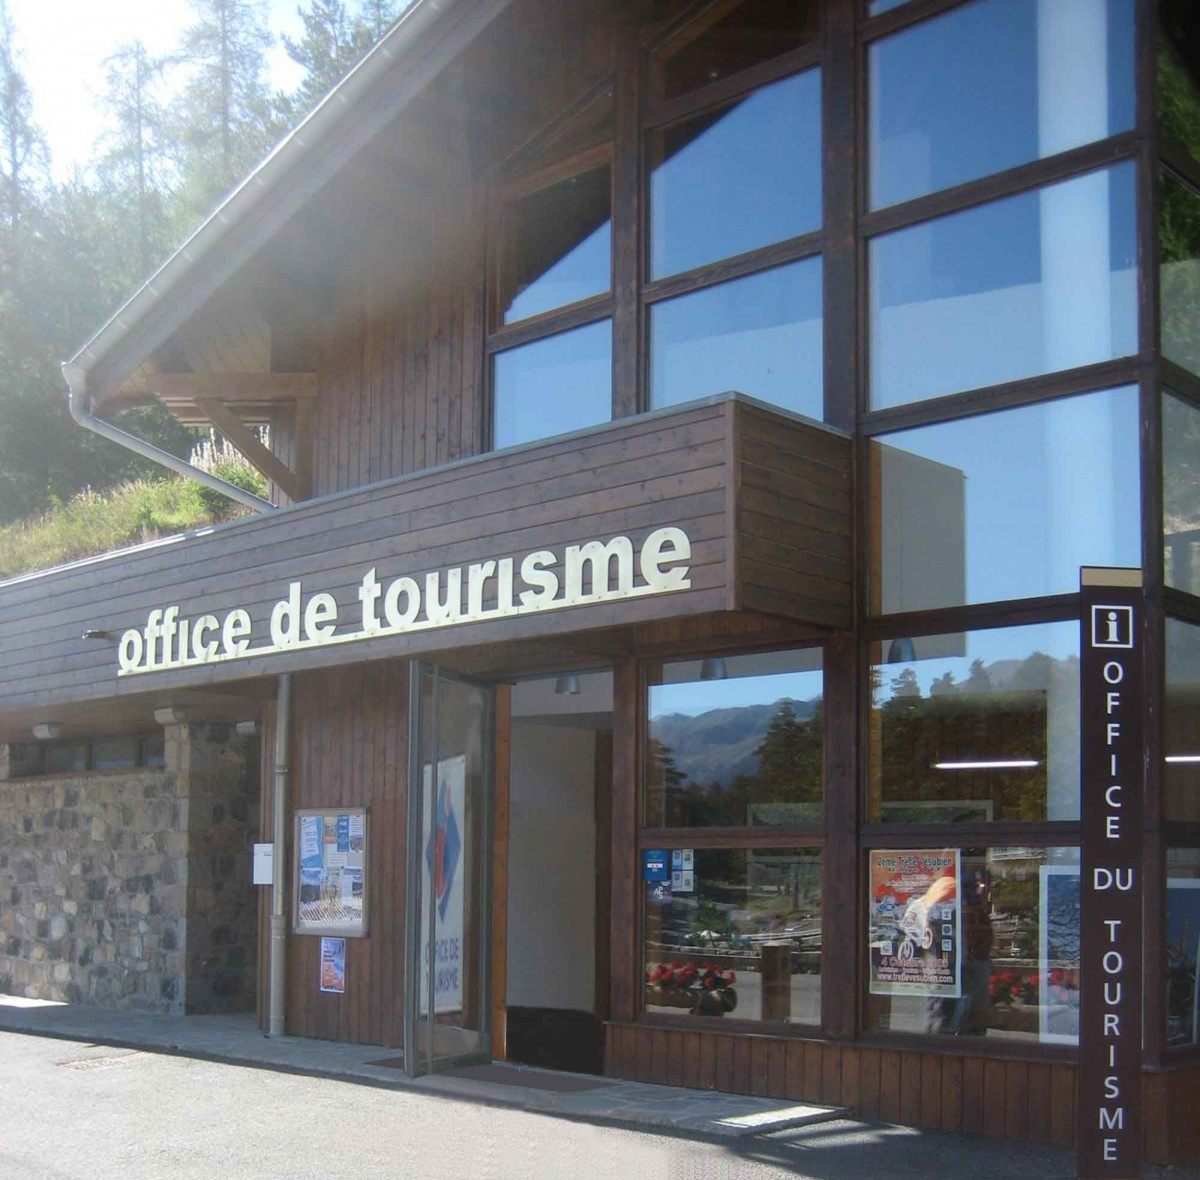 L 39 office de tourisme une photo de valdeblore - Office de tourisme louhans ...